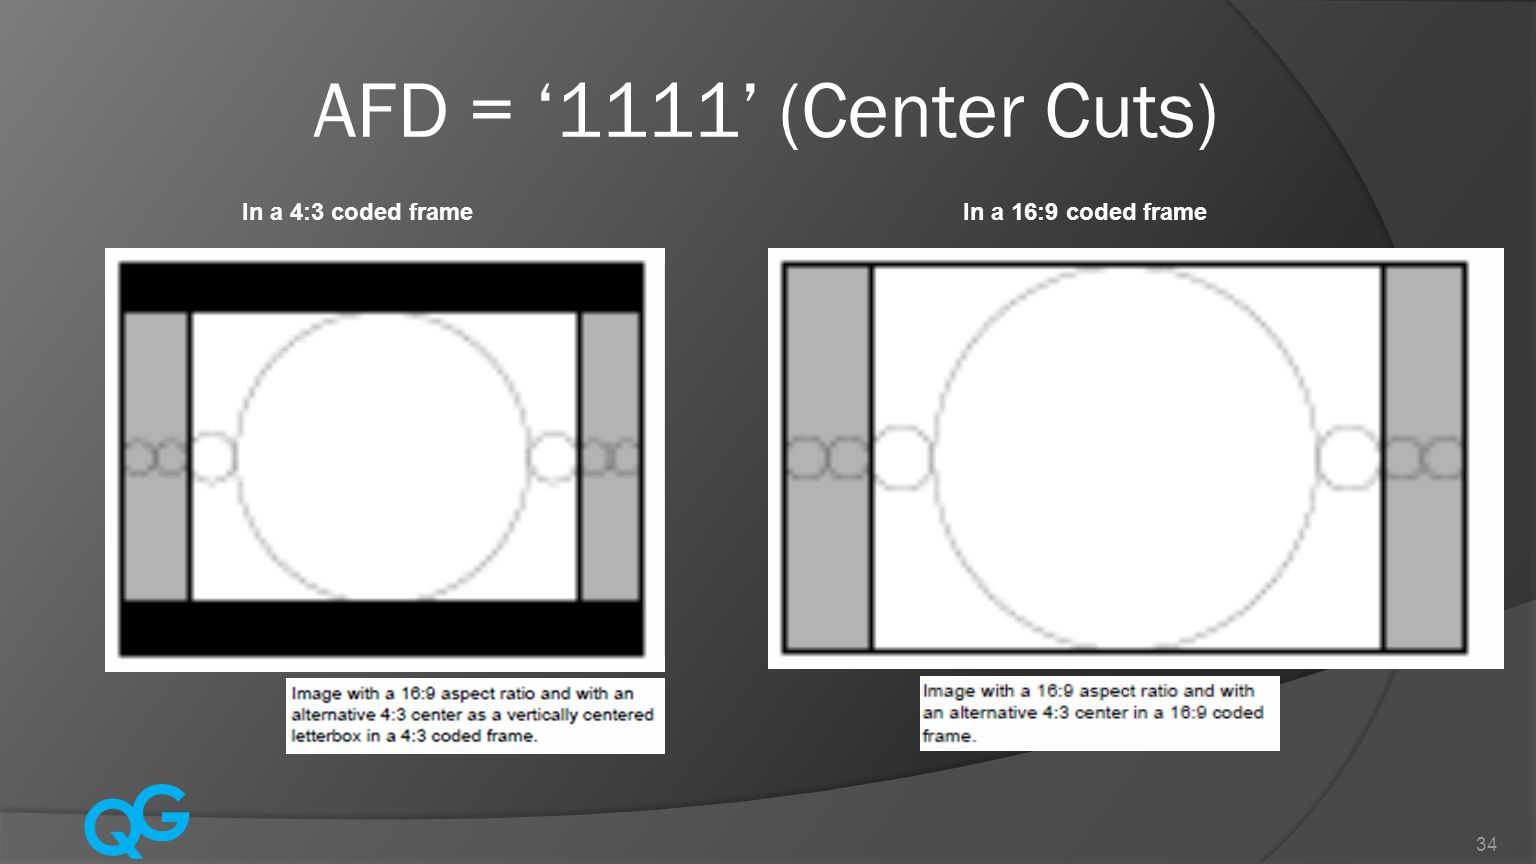 AFD = '1111' (Center Cuts) In a 4:3 coded frame In a 16:9 coded frame